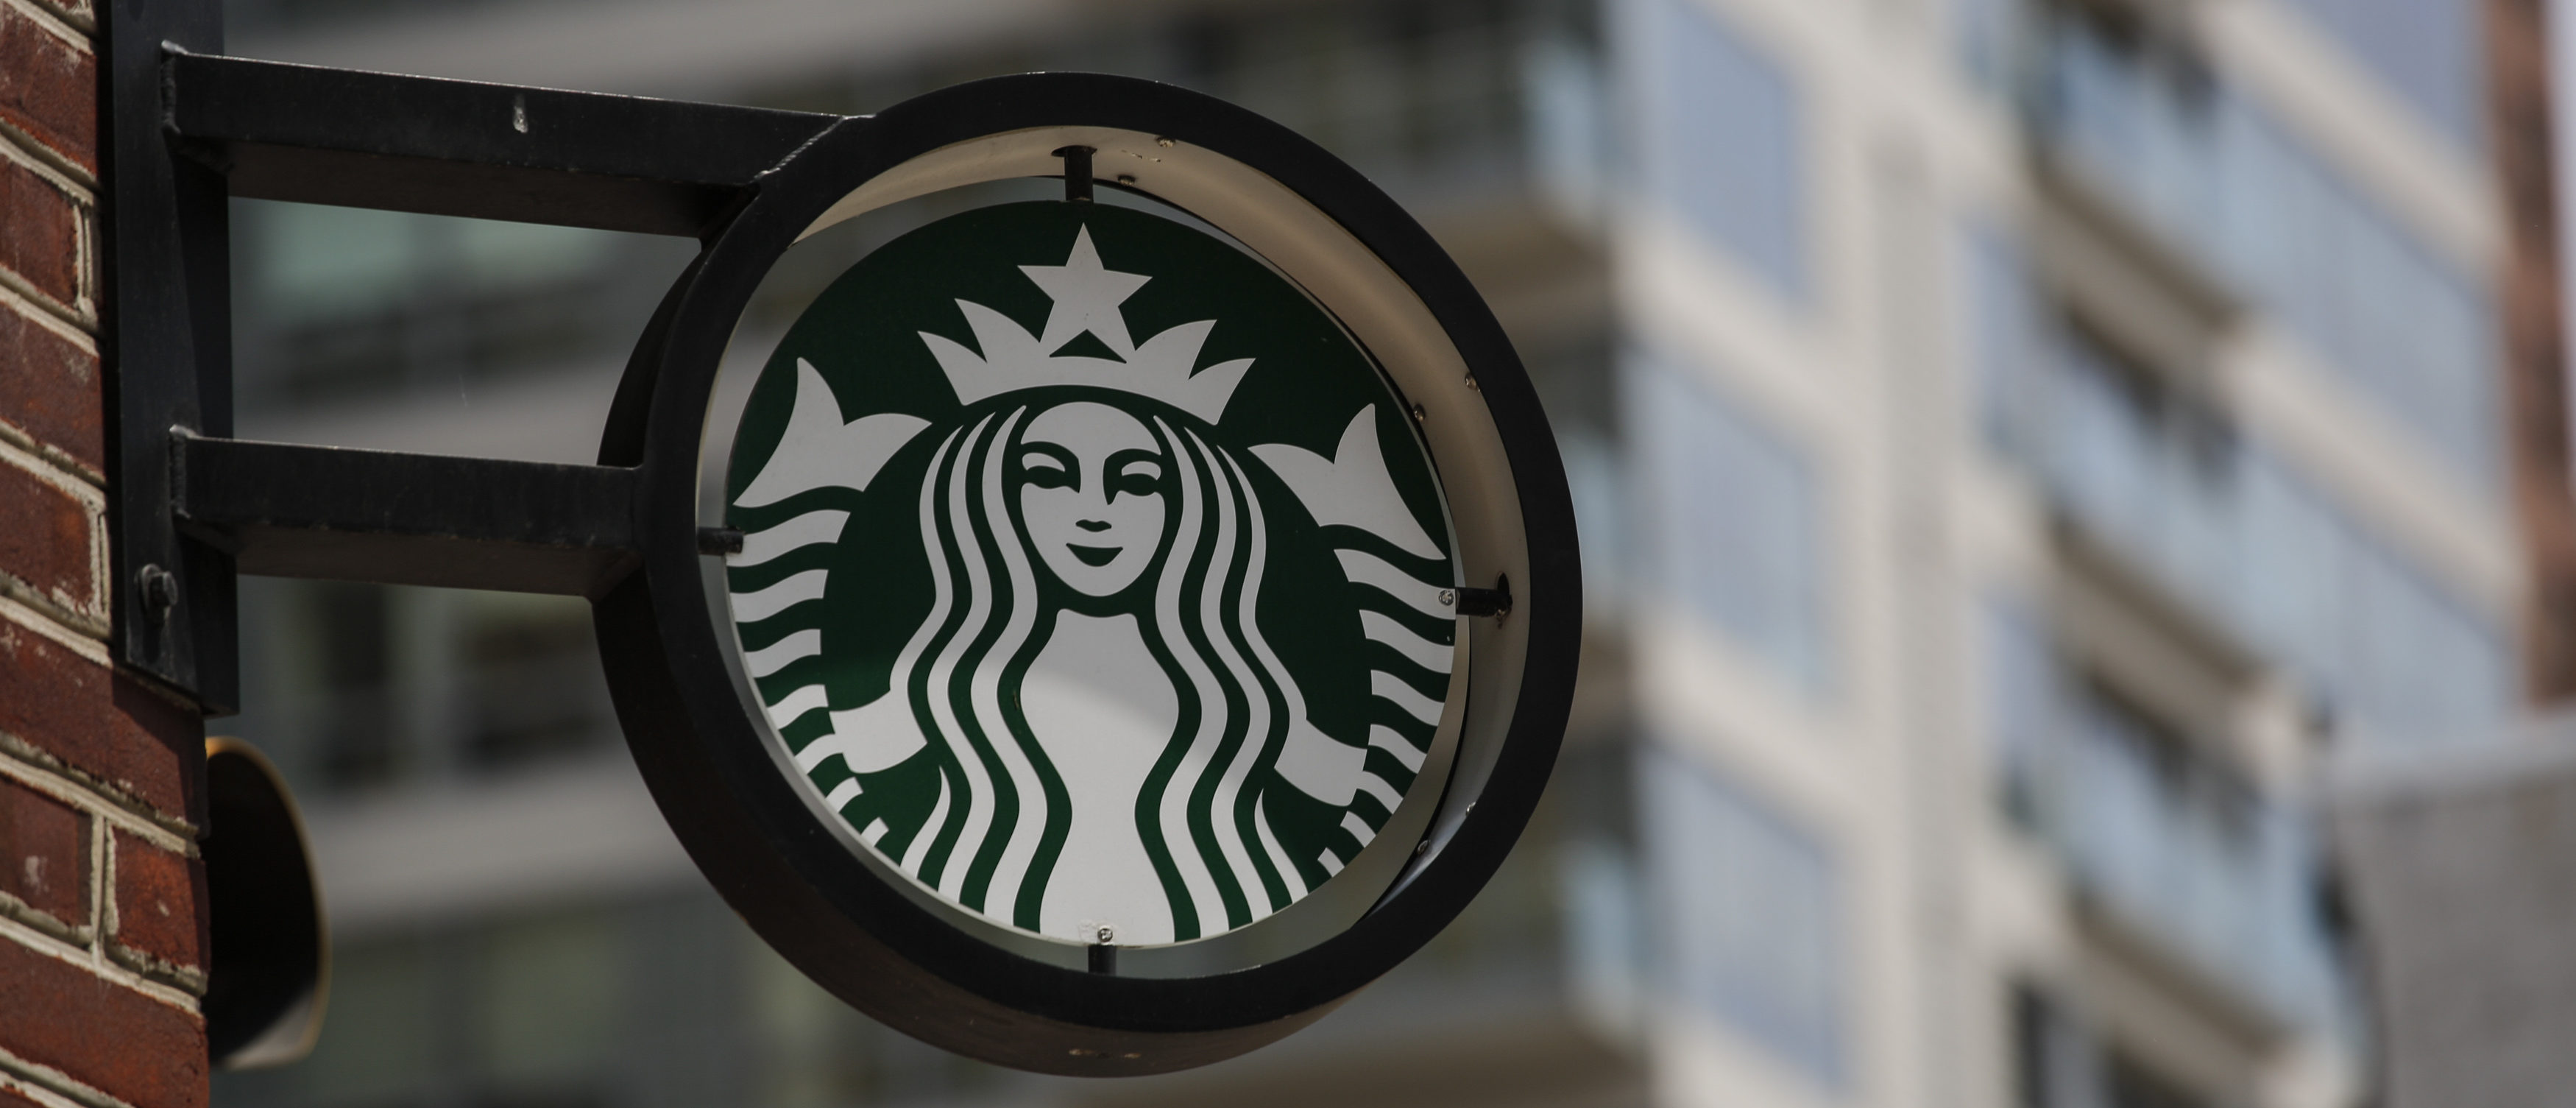 The Starbucks logo it's seen outside a store on May 29, 2018 in Philadelphia. - Starbucks is closing more than 8,000 stores across the United States Tuesday to conduct employee training on racial bias, a closely watched exercise that spotlights lingering problems of discrimination nationwide. (Photo by KENA BETANCUR / AFP) (Photo credit should read KENA BETANCUR/AFP/Getty Images)